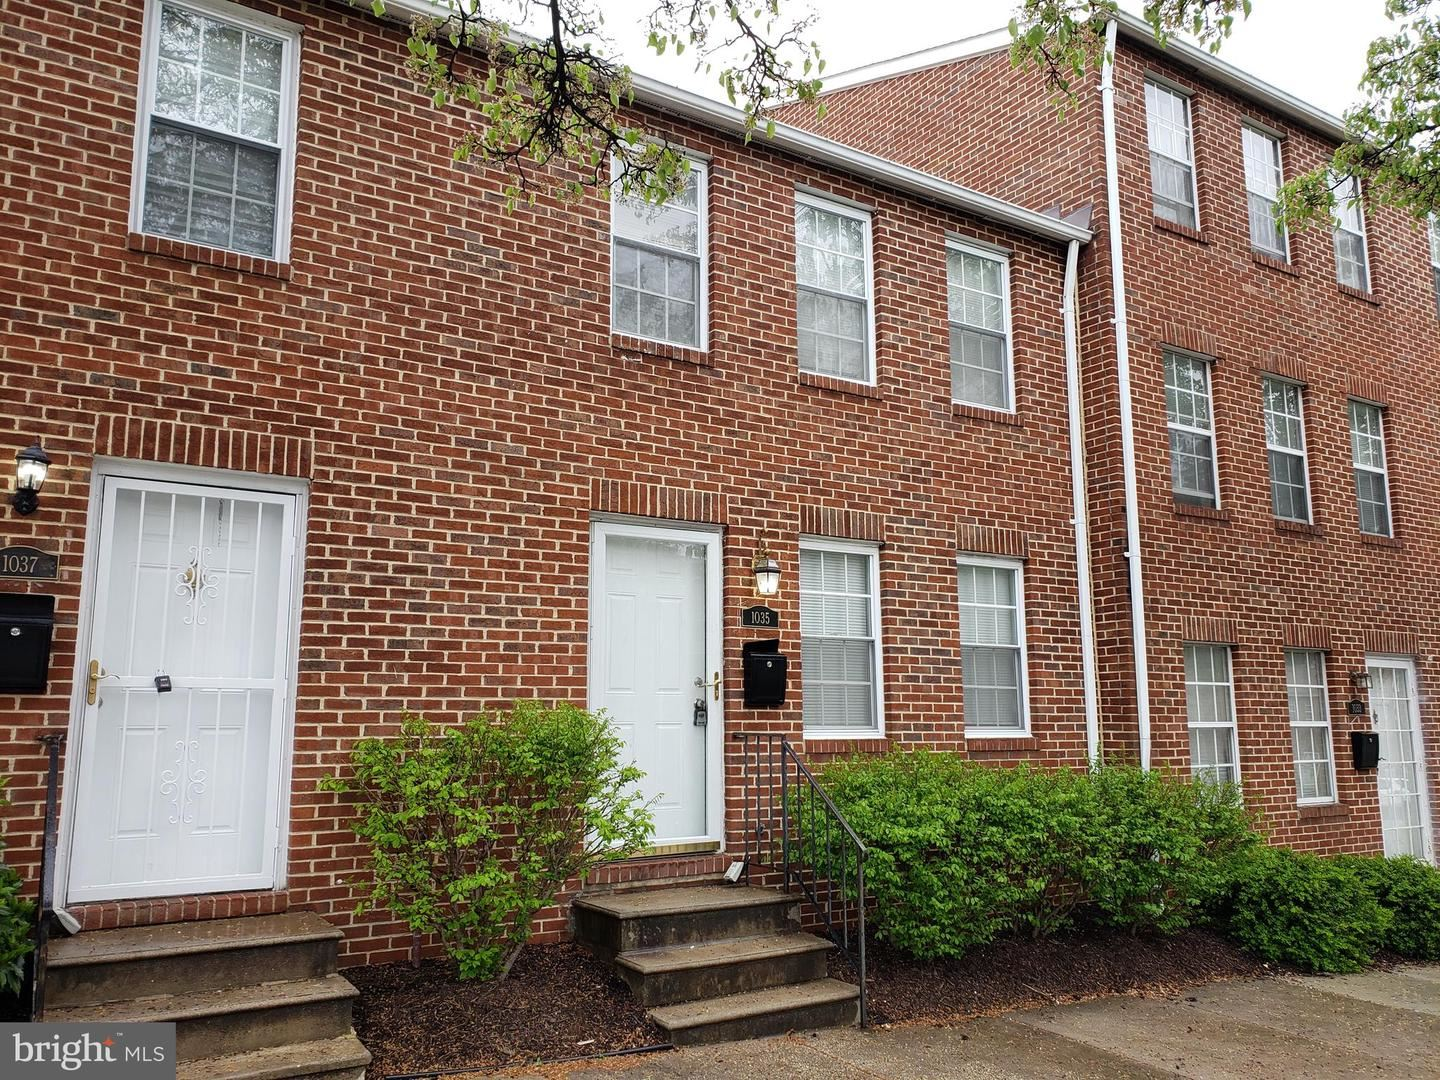 1035 N CENTRAL AVE, Baltimore, MD 21202 - MLS#: MDBA538878